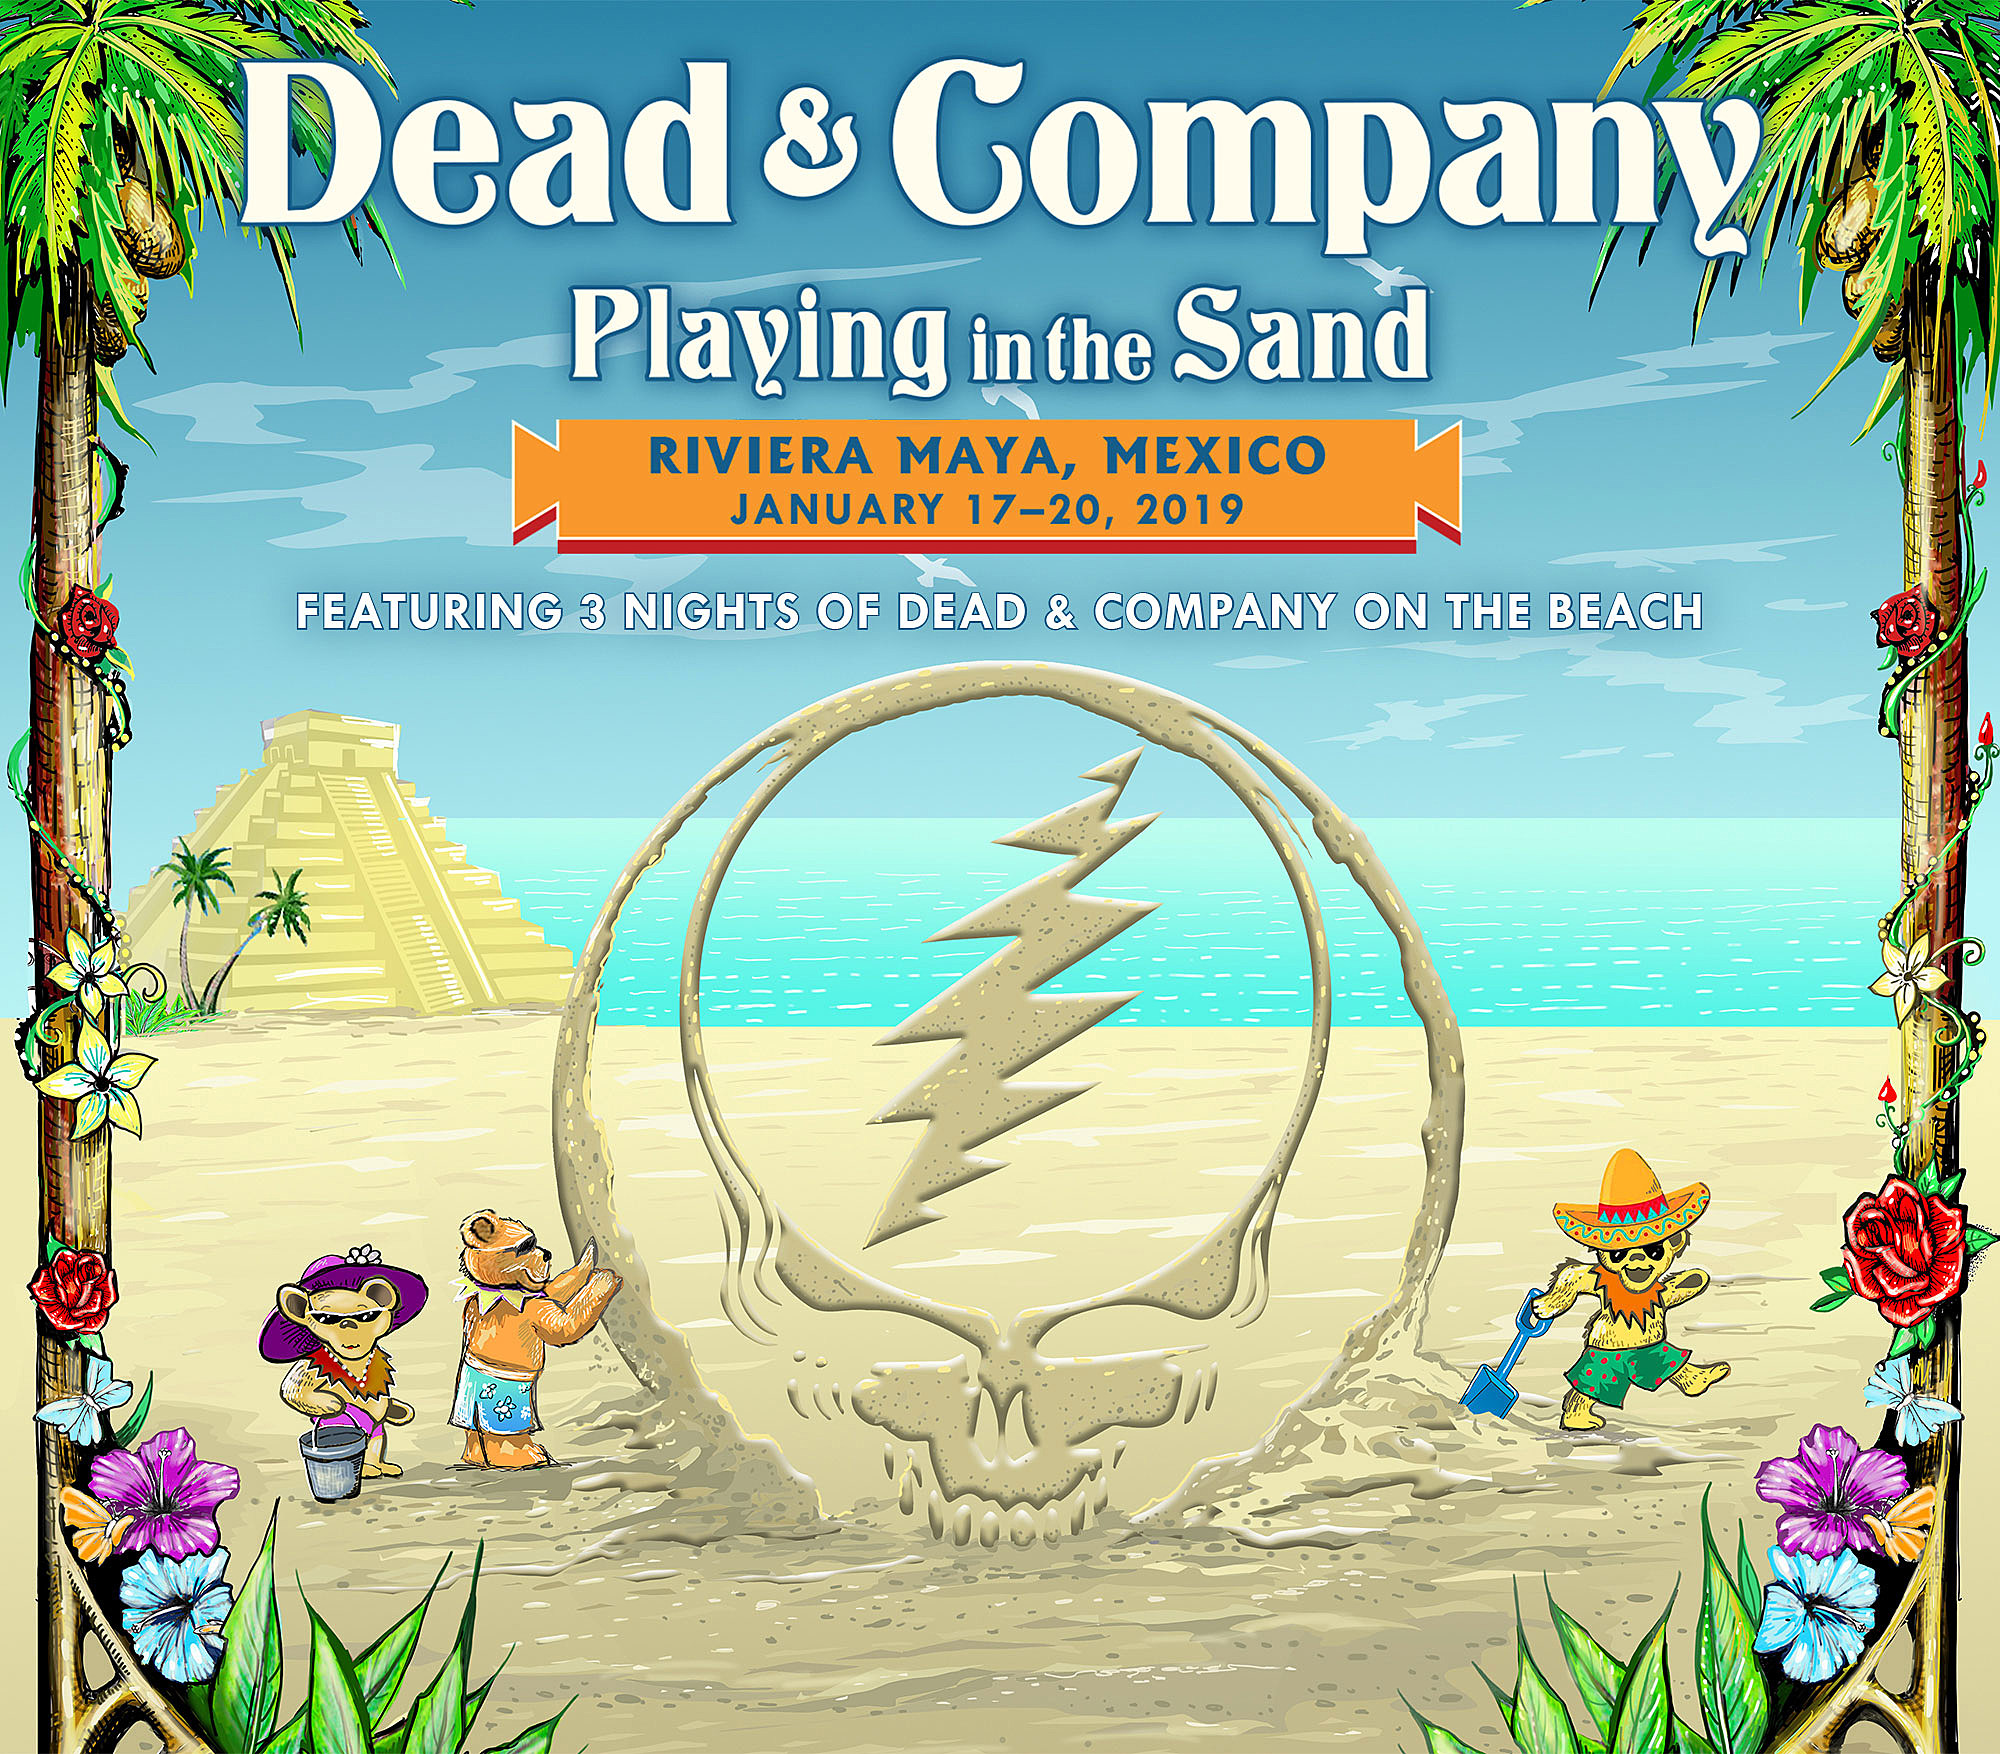 Bob Weir Tour 2020 Dead & Co announce Playing in the Sand 2019; Bob Weir expands trio